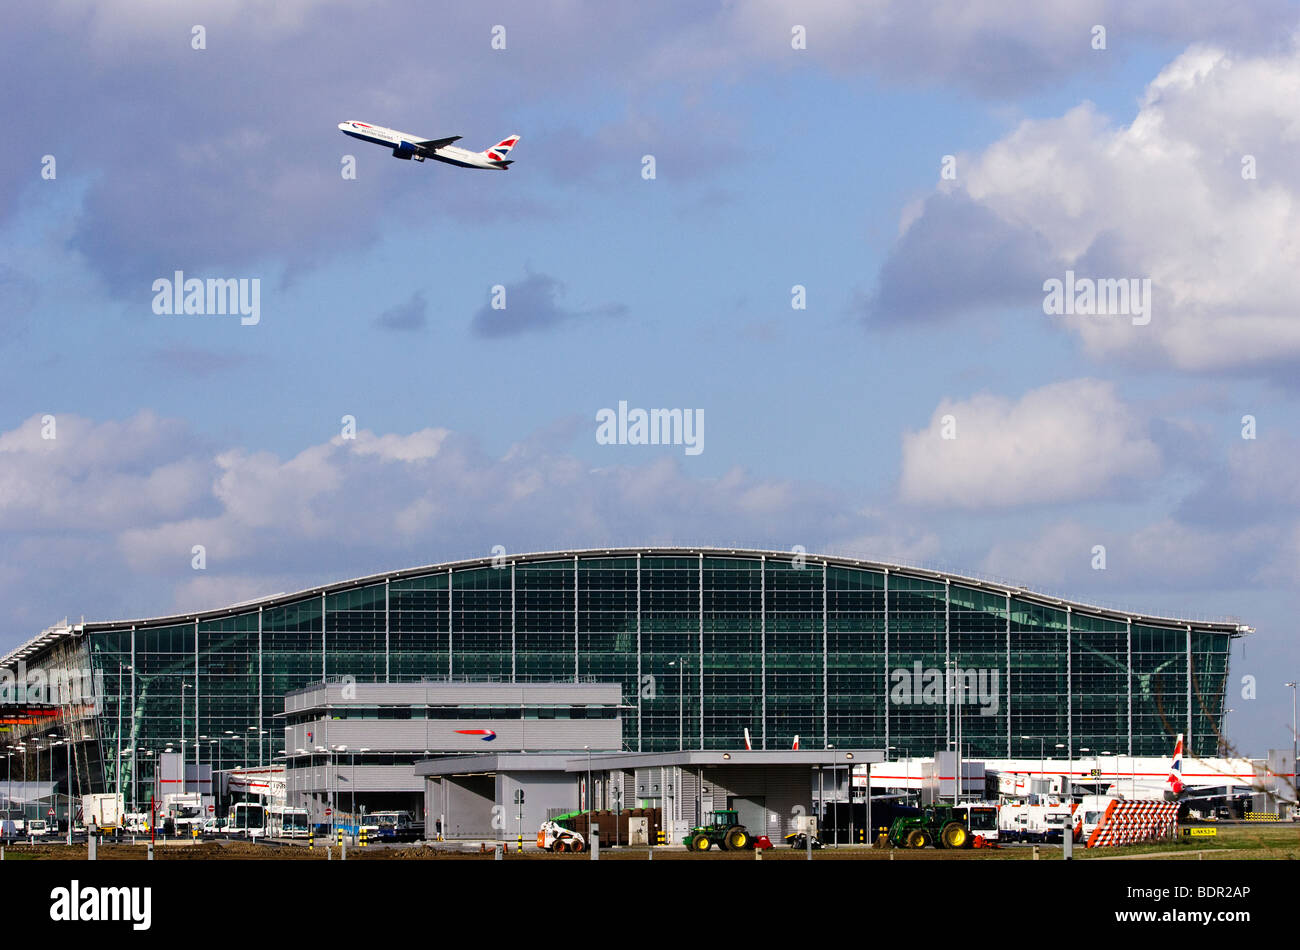 Terminal 5, London Heathrow Airport, with British Airways Boeing 767 taking off in background. - Stock Image